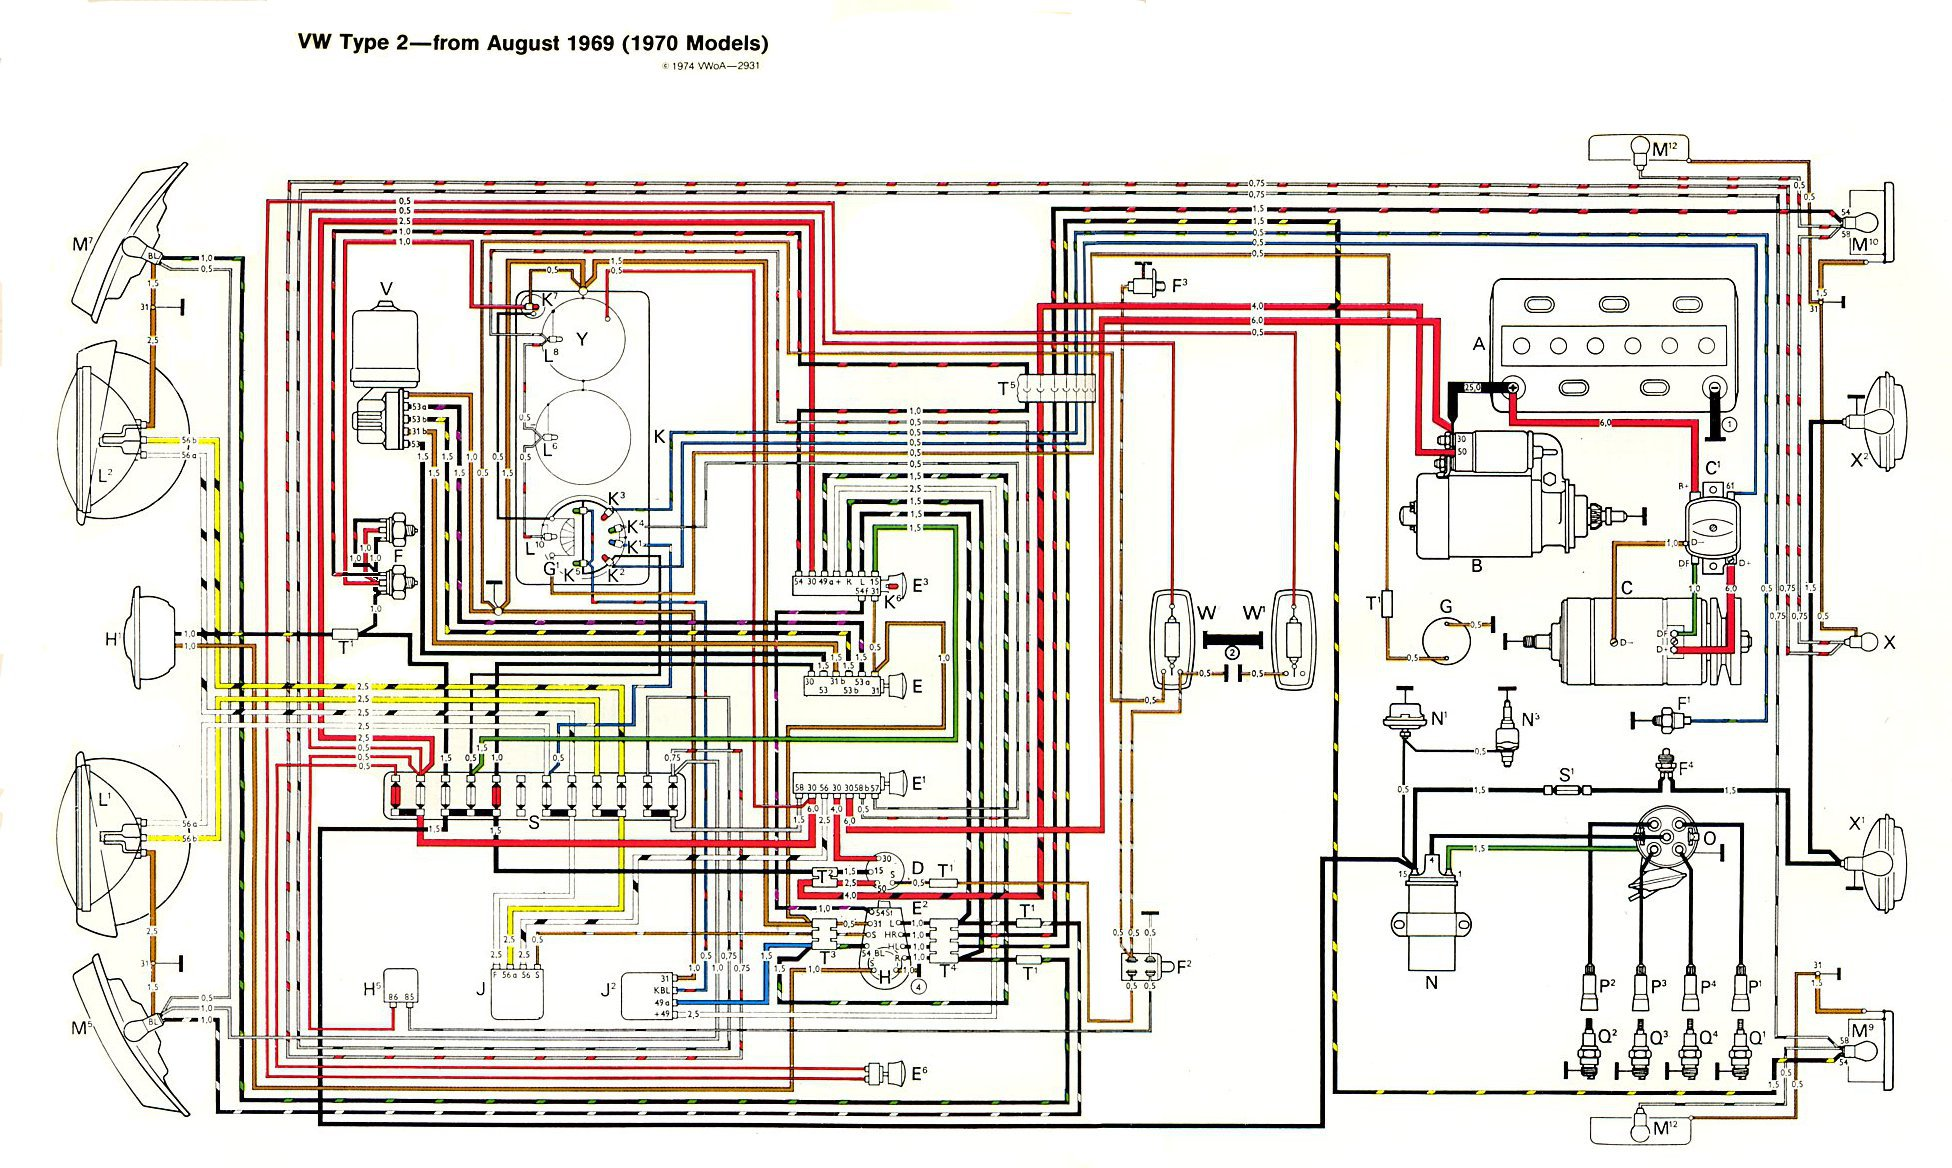 baybus_70 thesamba com type 2 wiring diagrams 1970 vw wiring diagram at mifinder.co